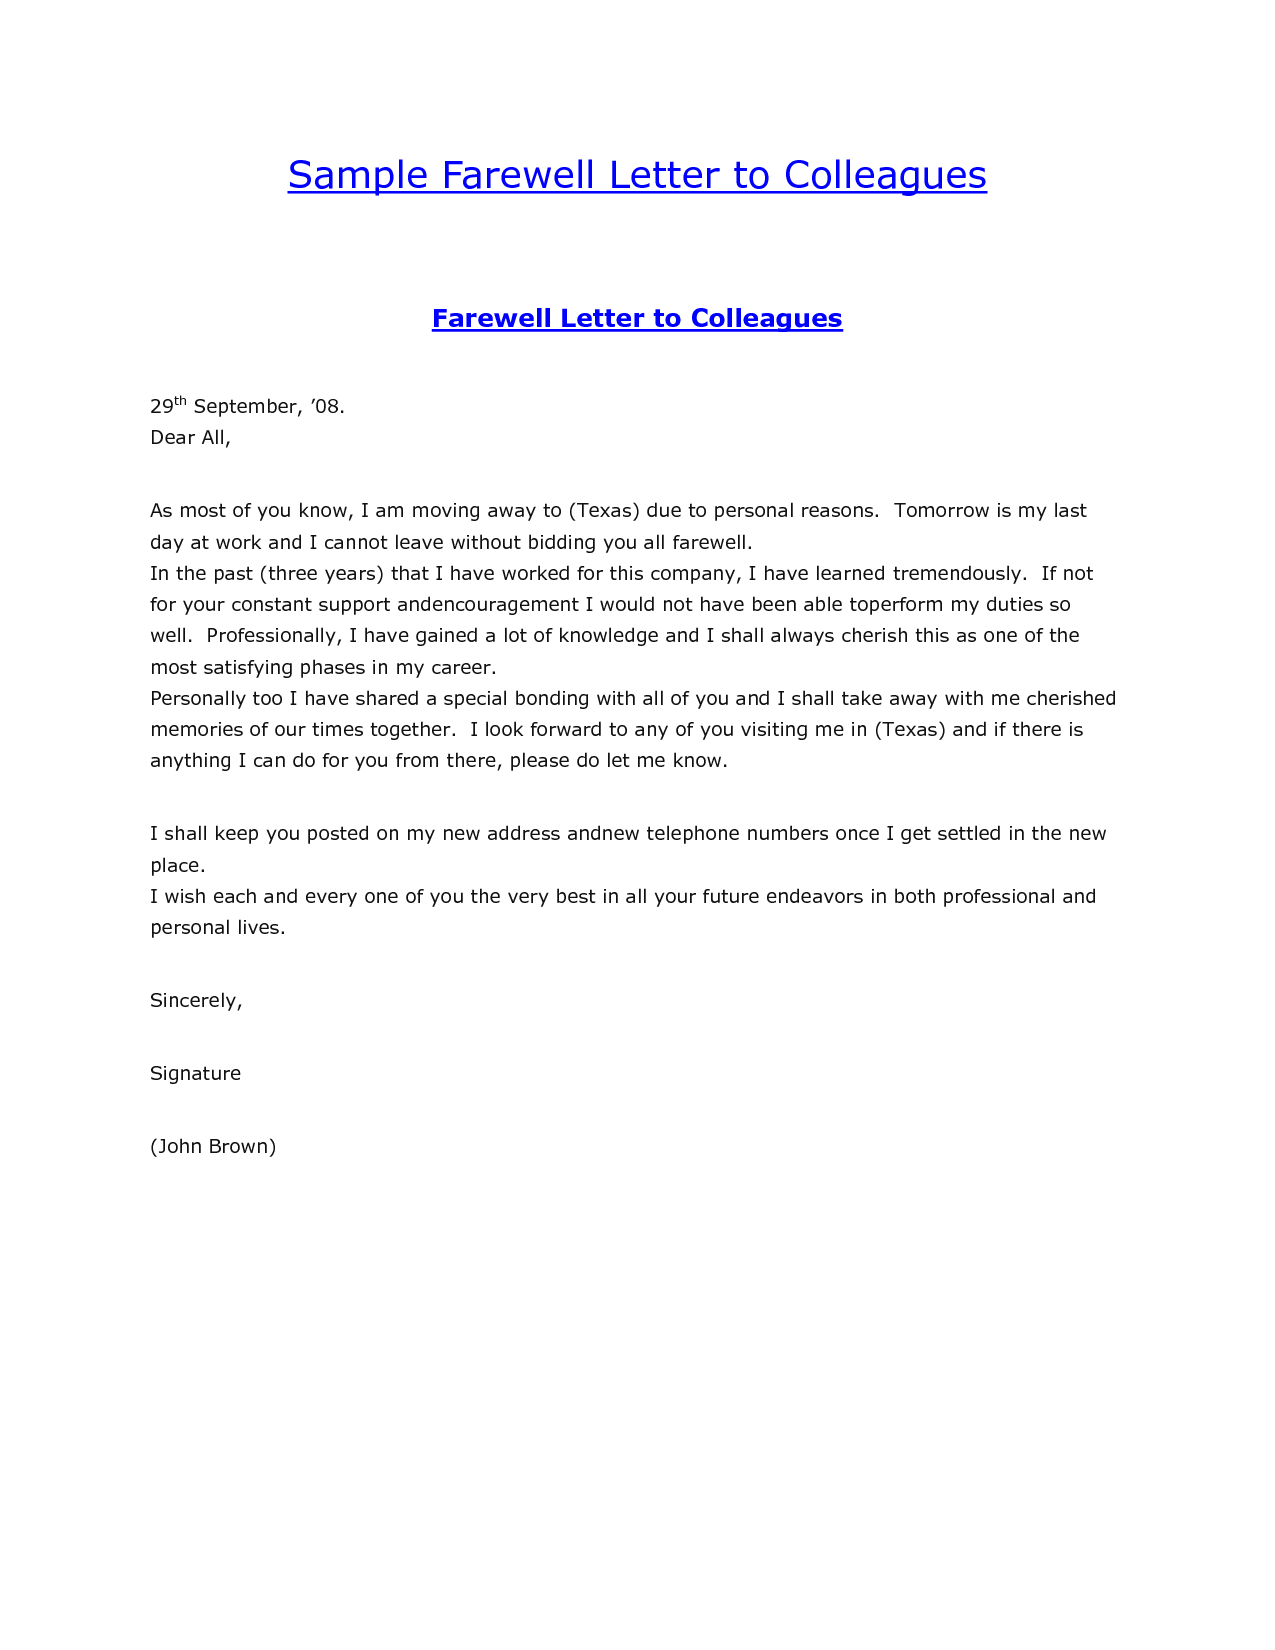 Sample Farewell Letter To ColleaguesGoodbye Letter Formal Letter Sample